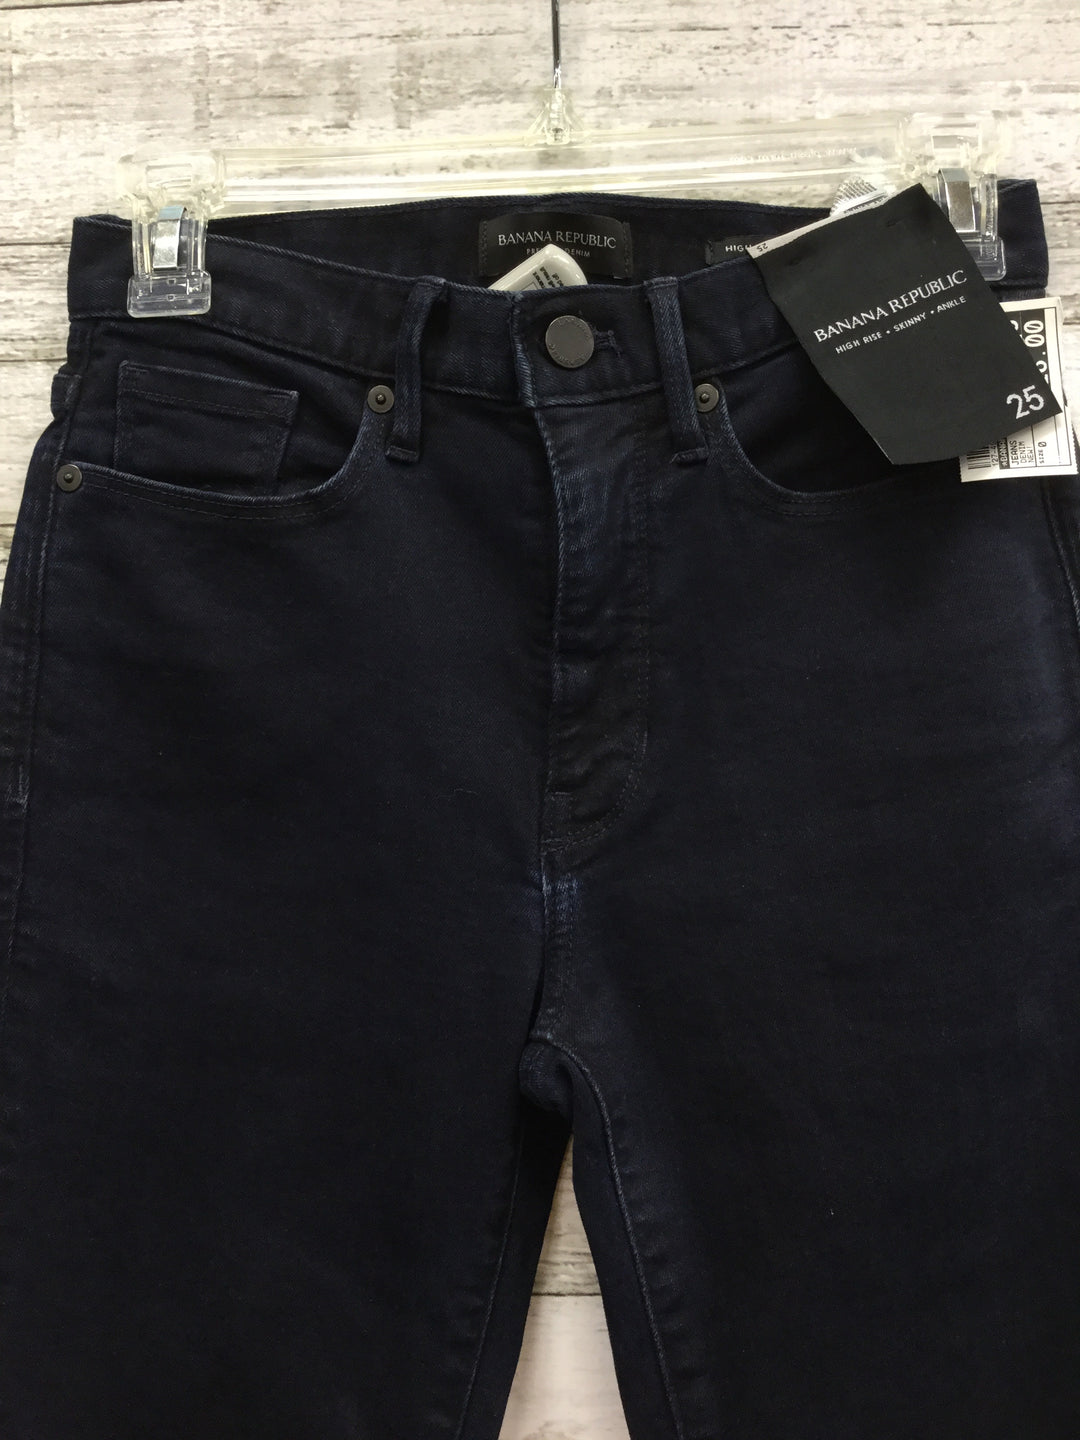 Photo #1 - BRAND: BANANA REPUBLIC , STYLE: JEANS , COLOR: DENIM , SIZE: 0 , OTHER INFO: NEW! , SKU: 127-4954-4755, , NEW WITH TAGS, HIGH RISE, SKINNY, ANKLE JEANS.